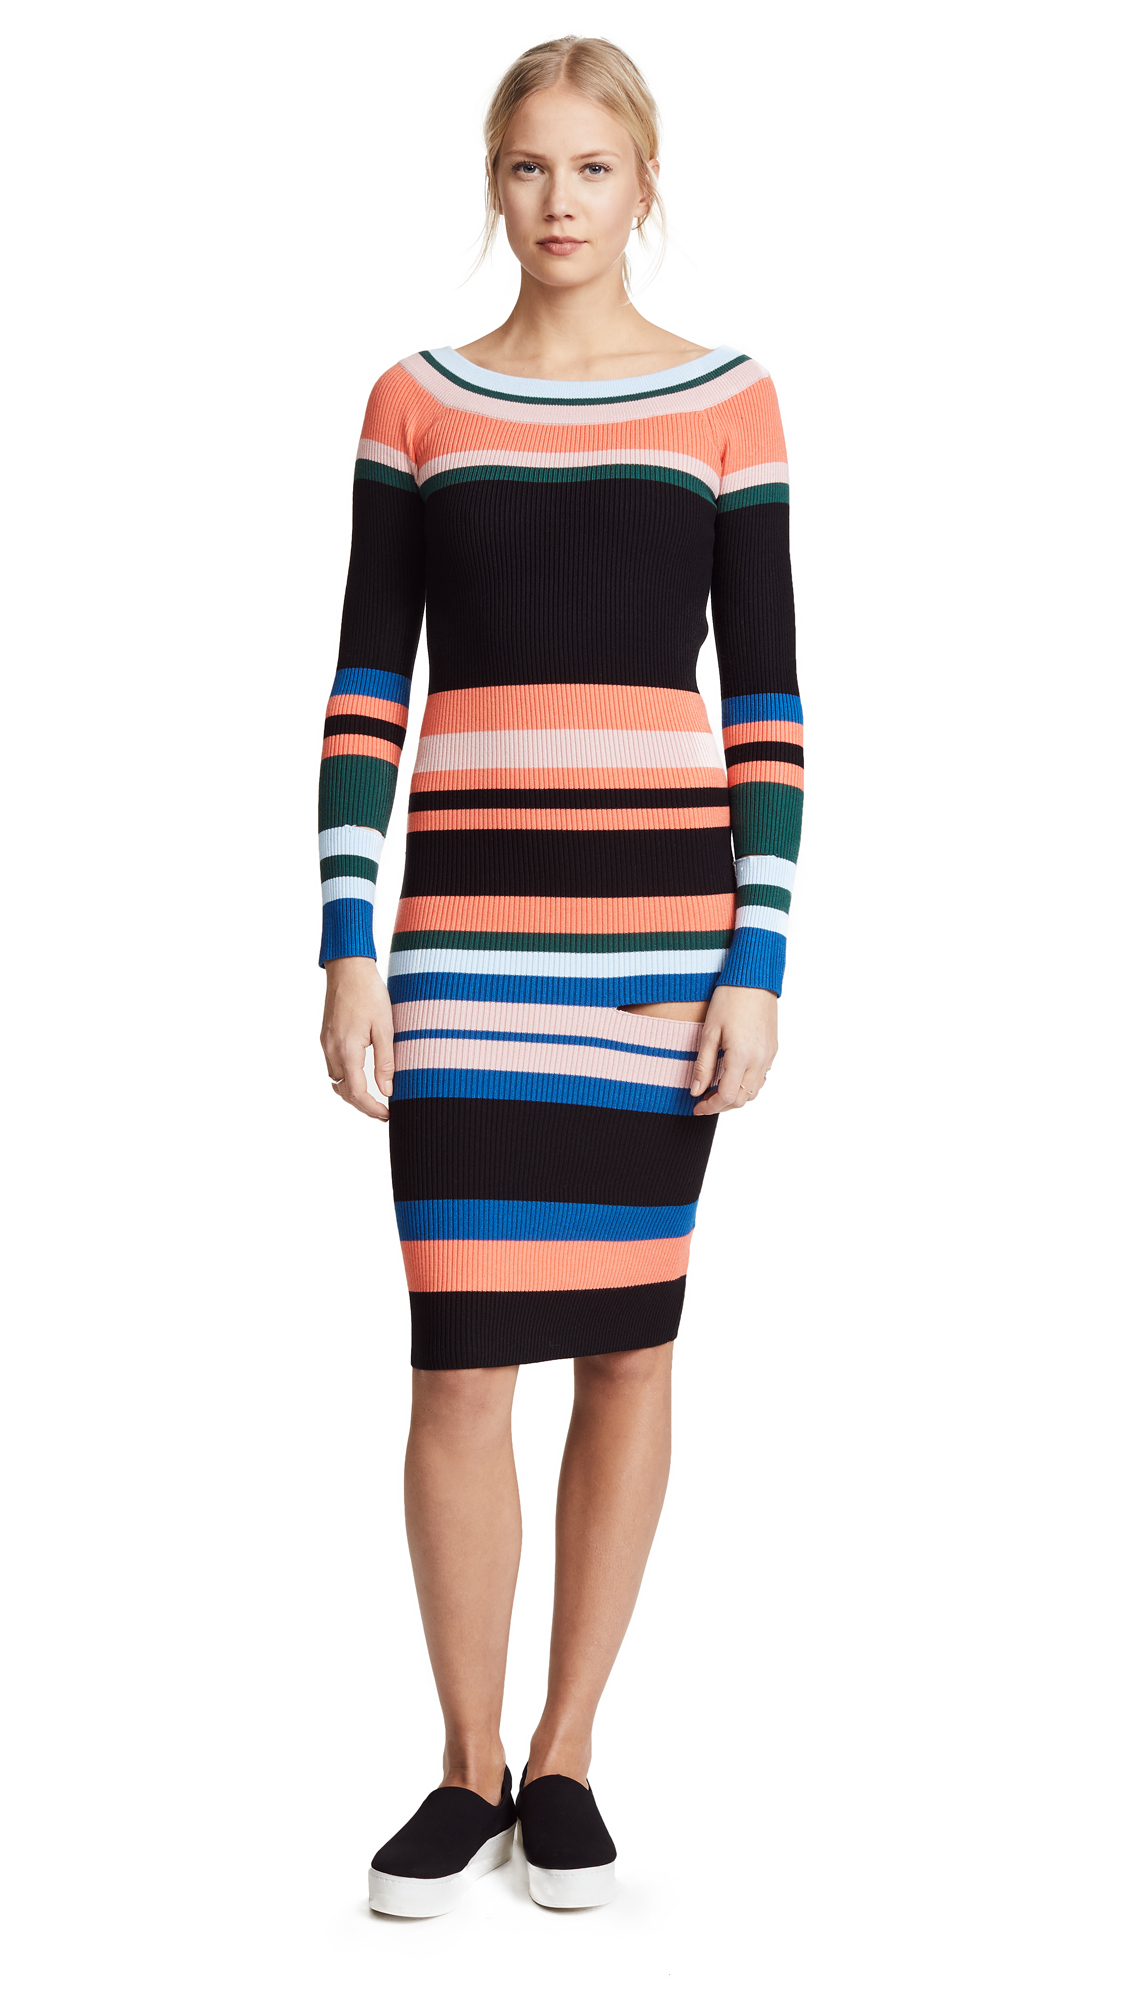 STYLEKEEPERS Matisse Knit Dress - Multi Stripe